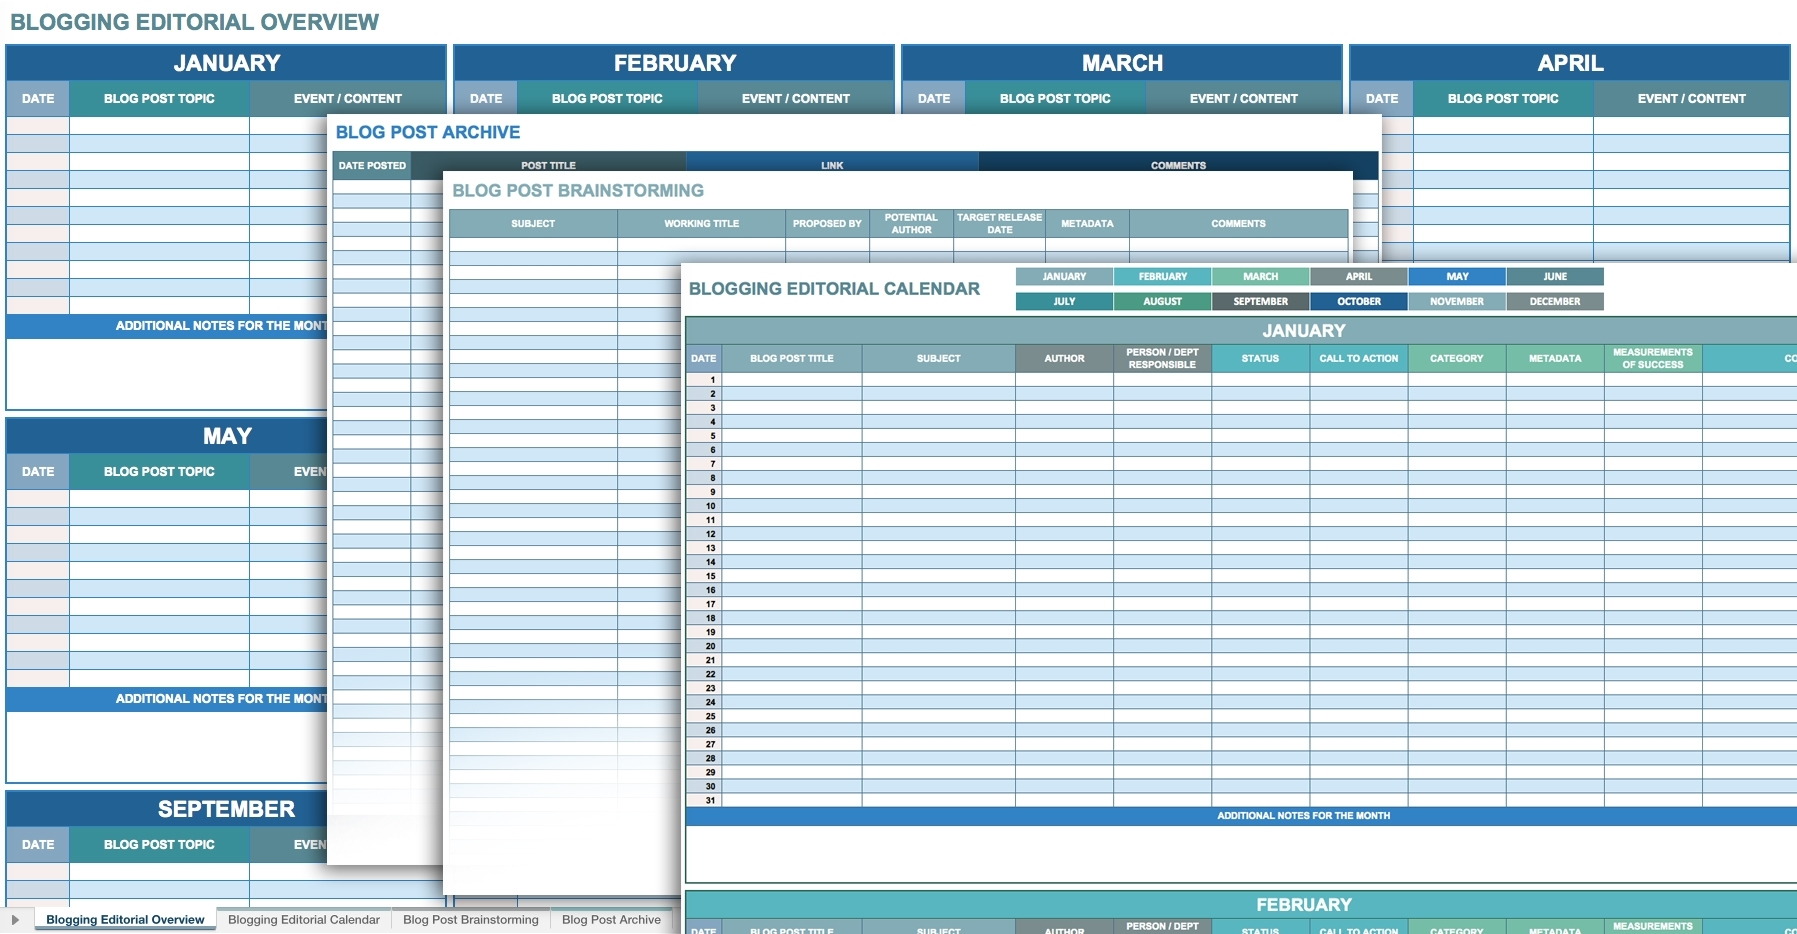 12 Free Social Media Templates | Smartsheet within Social Media Posting Calendar Template Free Printable Excel